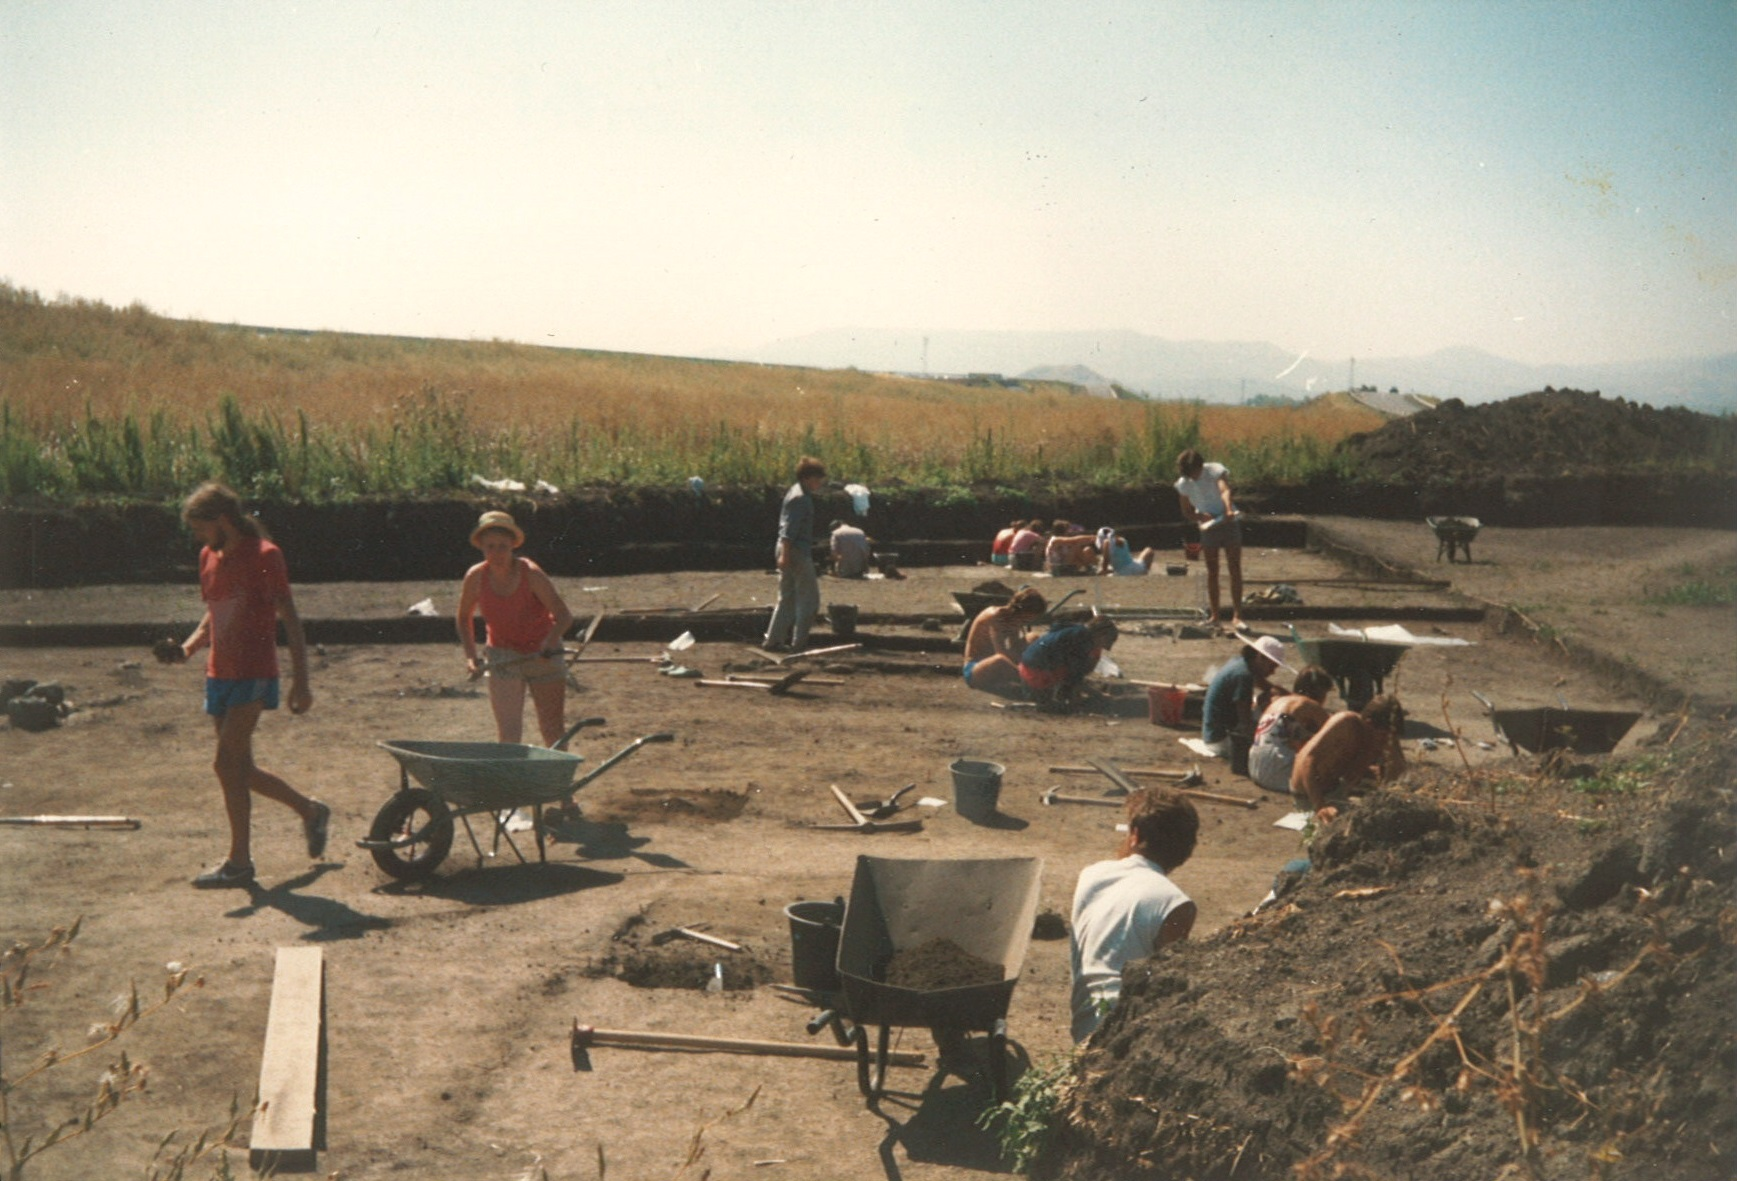 The archaeological site in central France where the author spent four summers working in the 1980s.